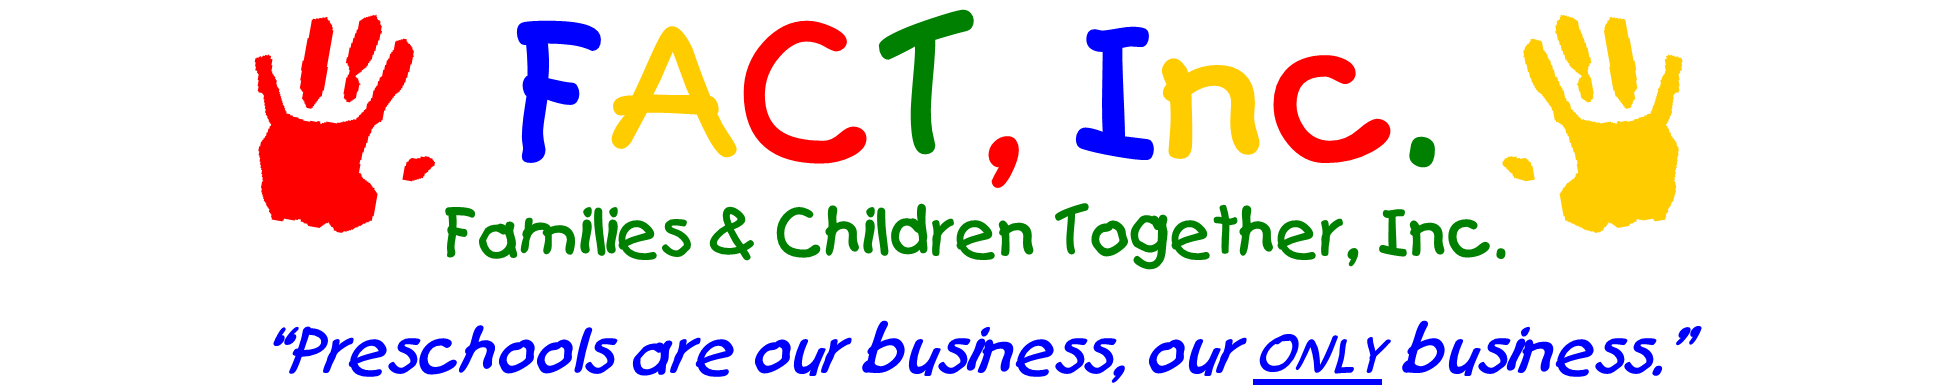 Families and Children Together, FACT, INC